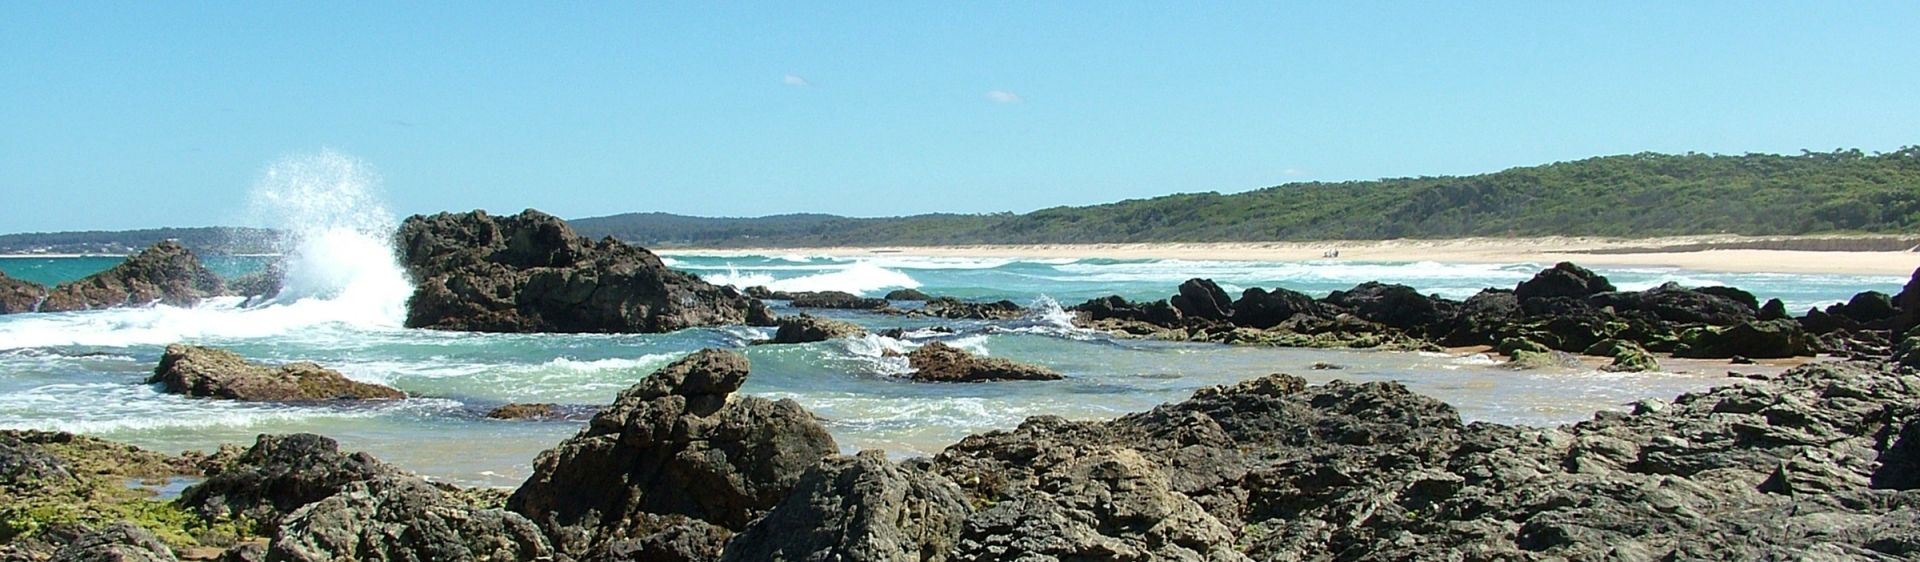 Haywards Beach at Bermagui on the South Coast